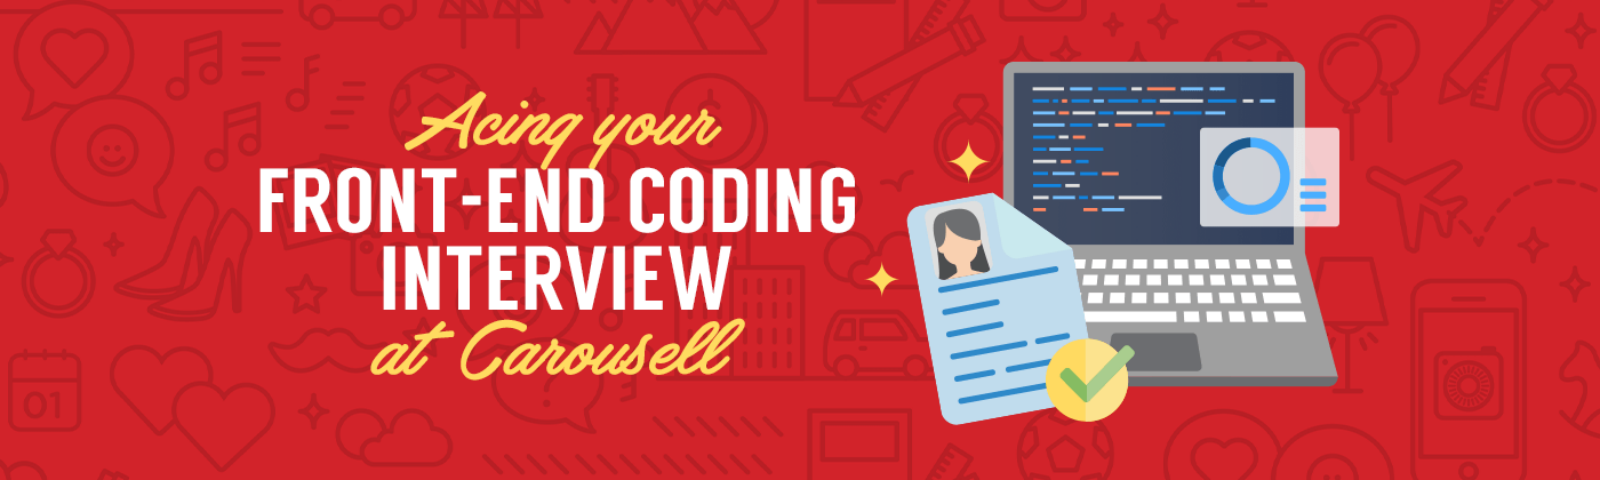 Acing your front-end coding interview at Carousell